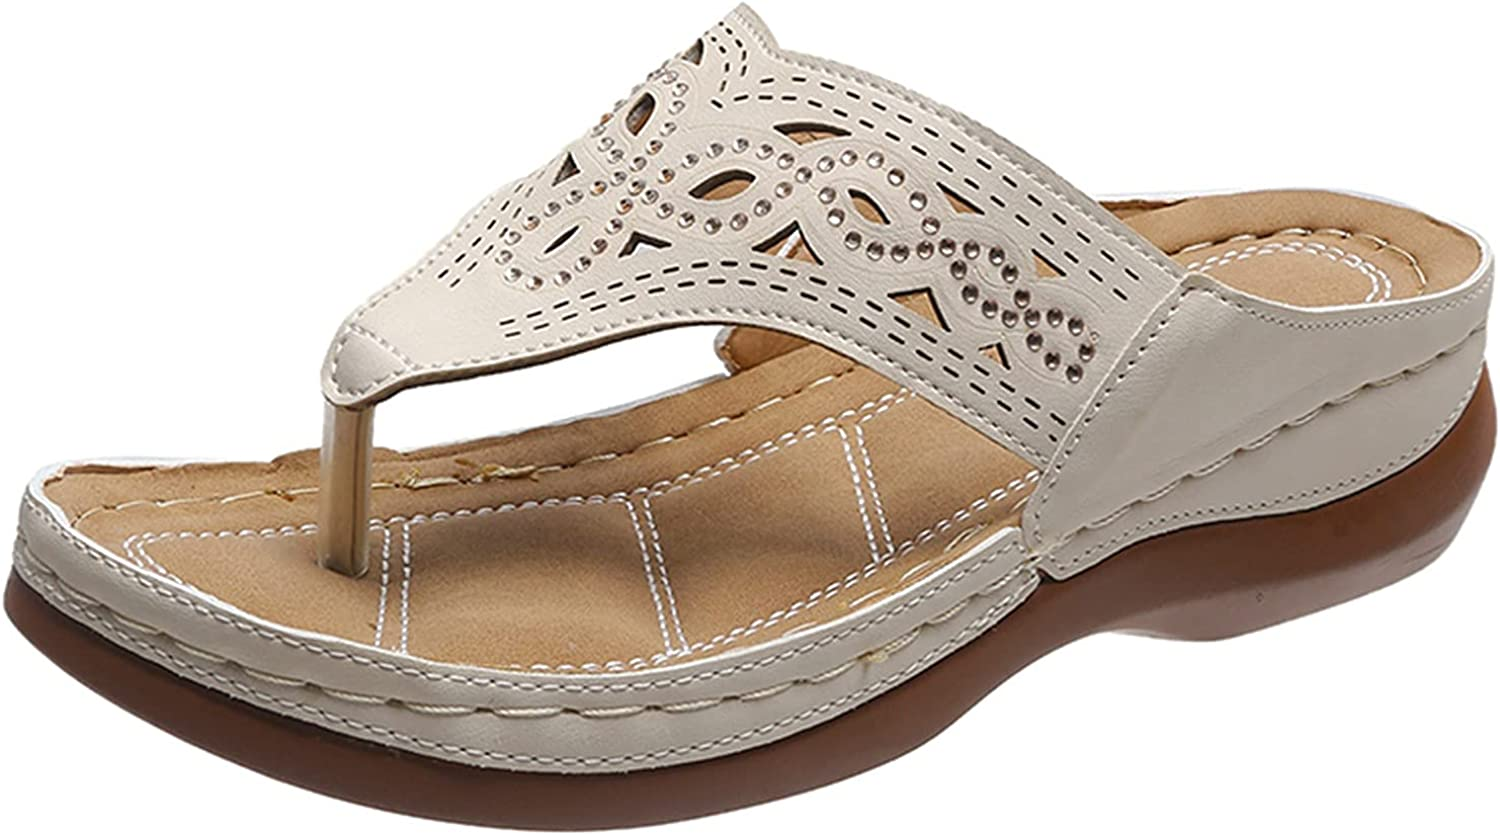 Sandals for Women Casual Summer,Thong Sandals Indoor and Outdoor Beach Flip Flop Wedge Sandals Shoes